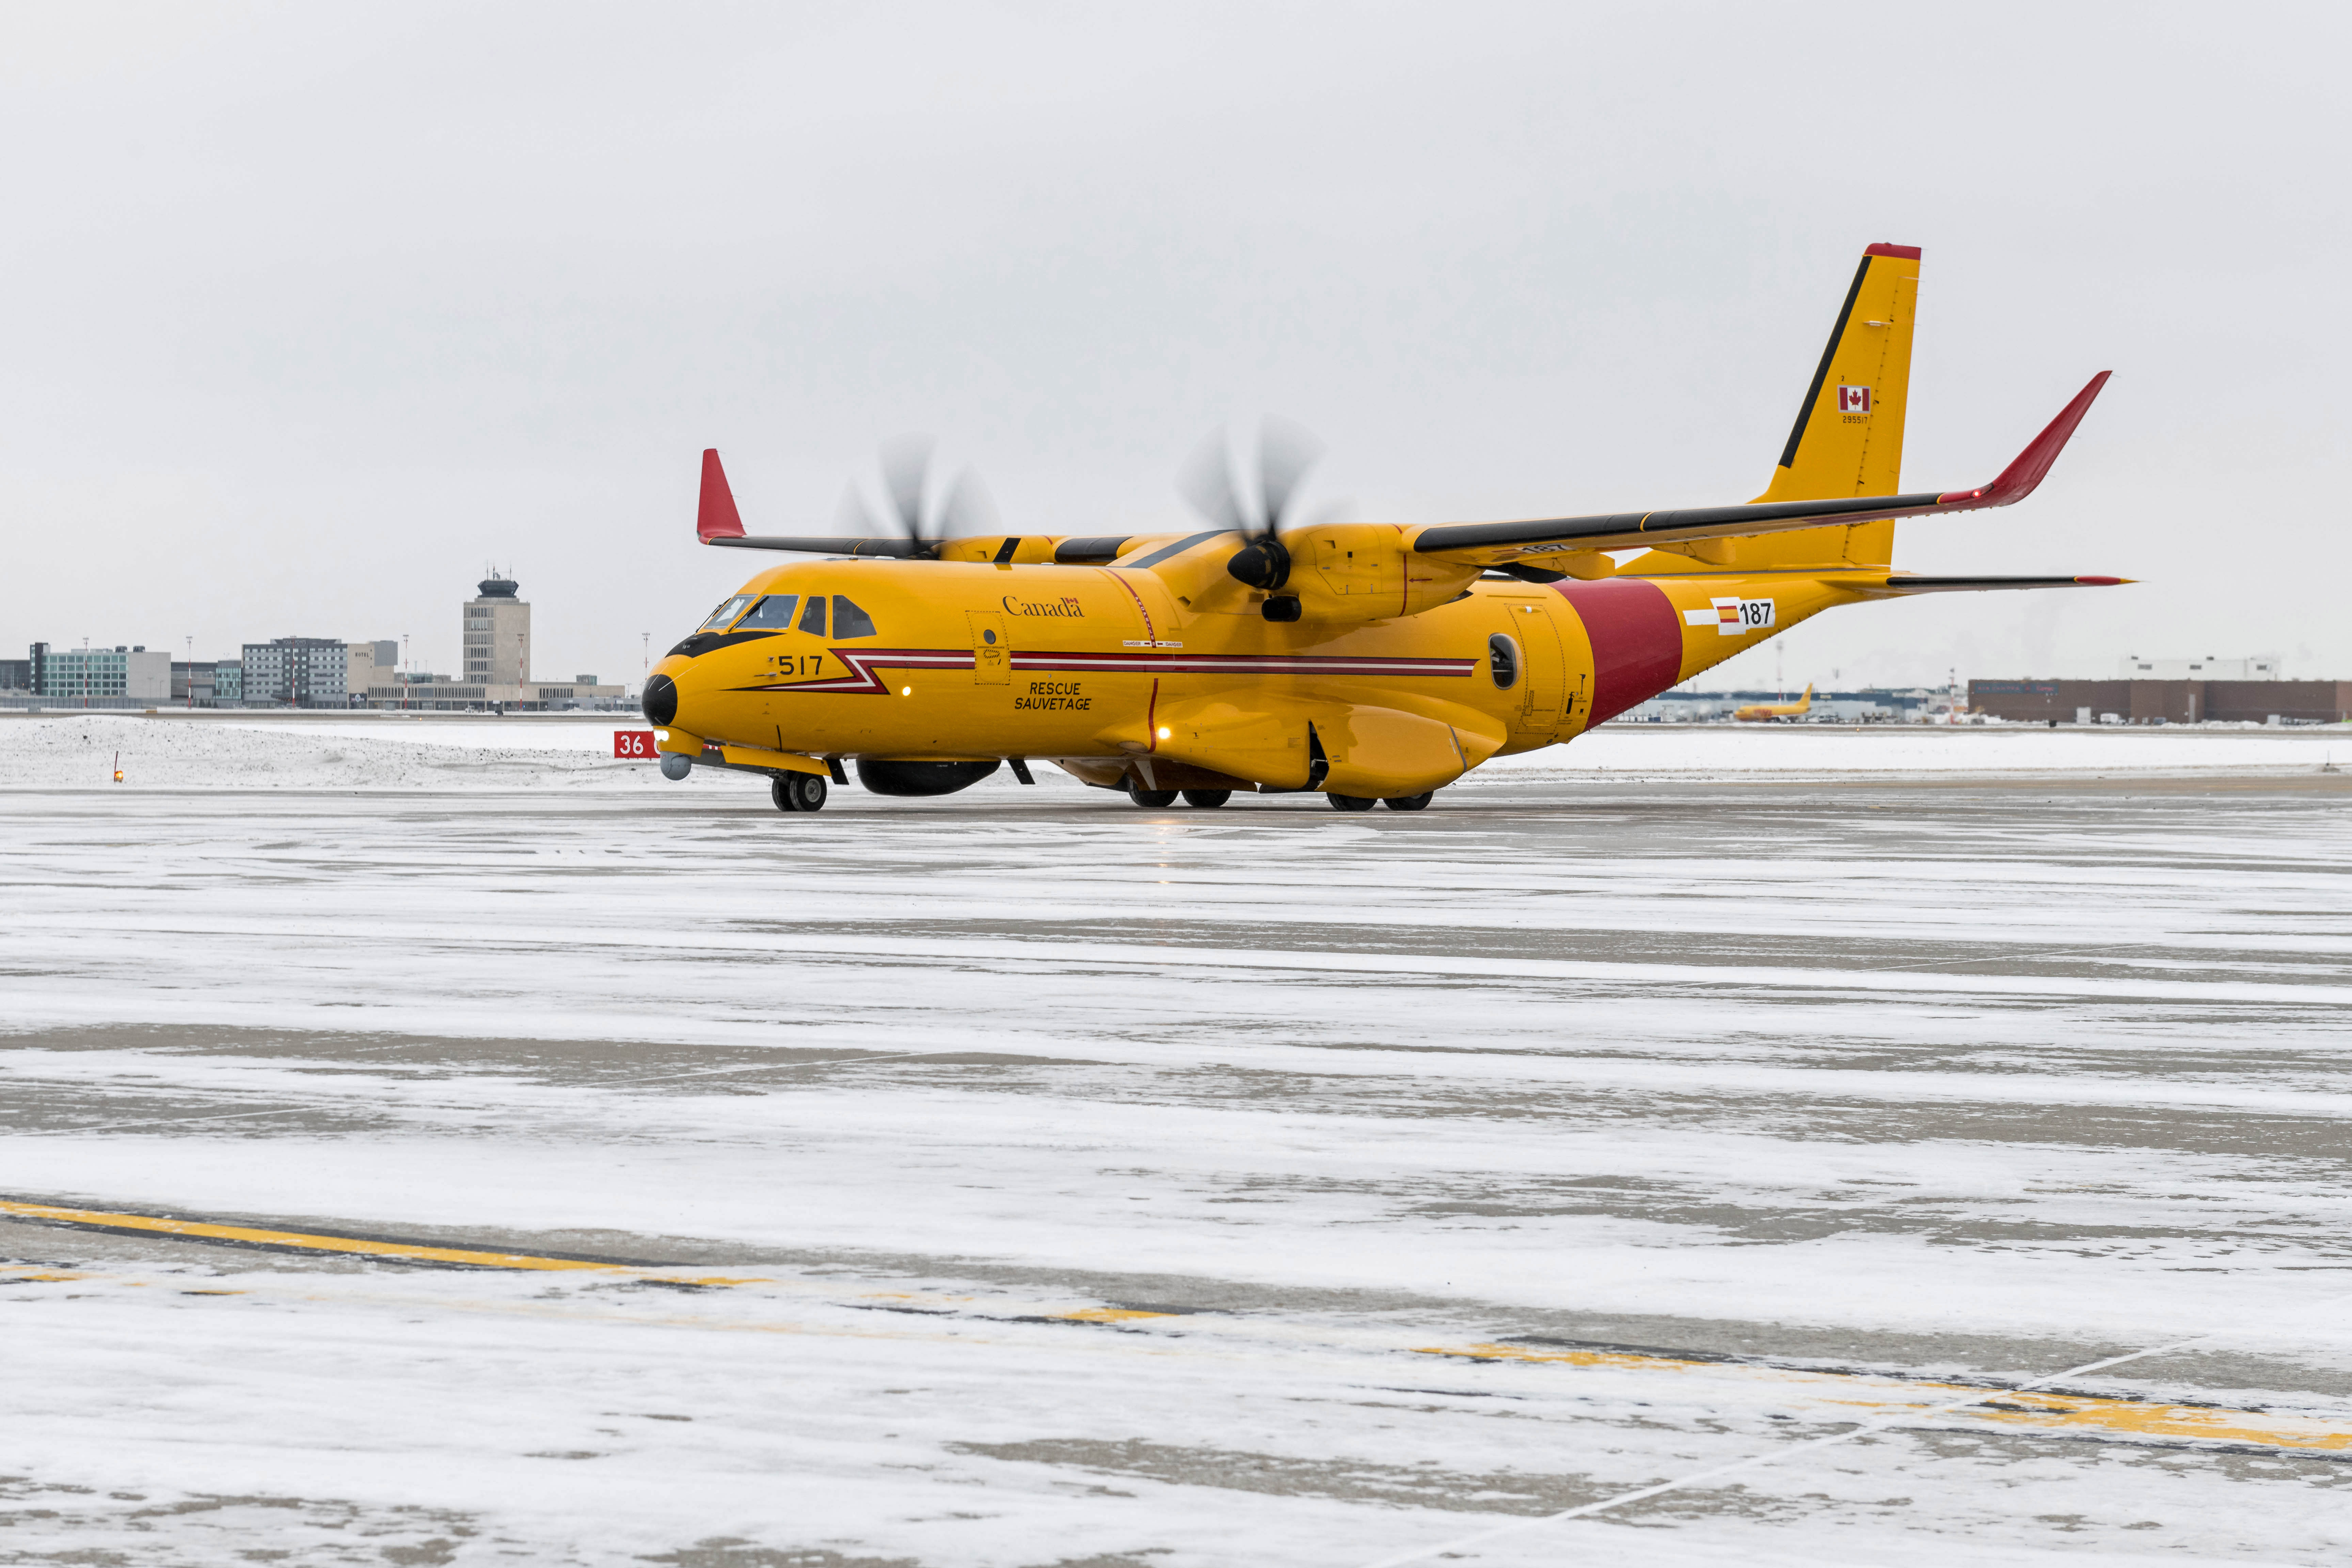 A training variant of the CC-295 Fixed Wing Search and Rescue aircraft arrives at 17 Wing Winnipeg, Manitoba during its cross-Canada itinerary on February 3, 2020. PHOTO: Sergeant Daren Kraus